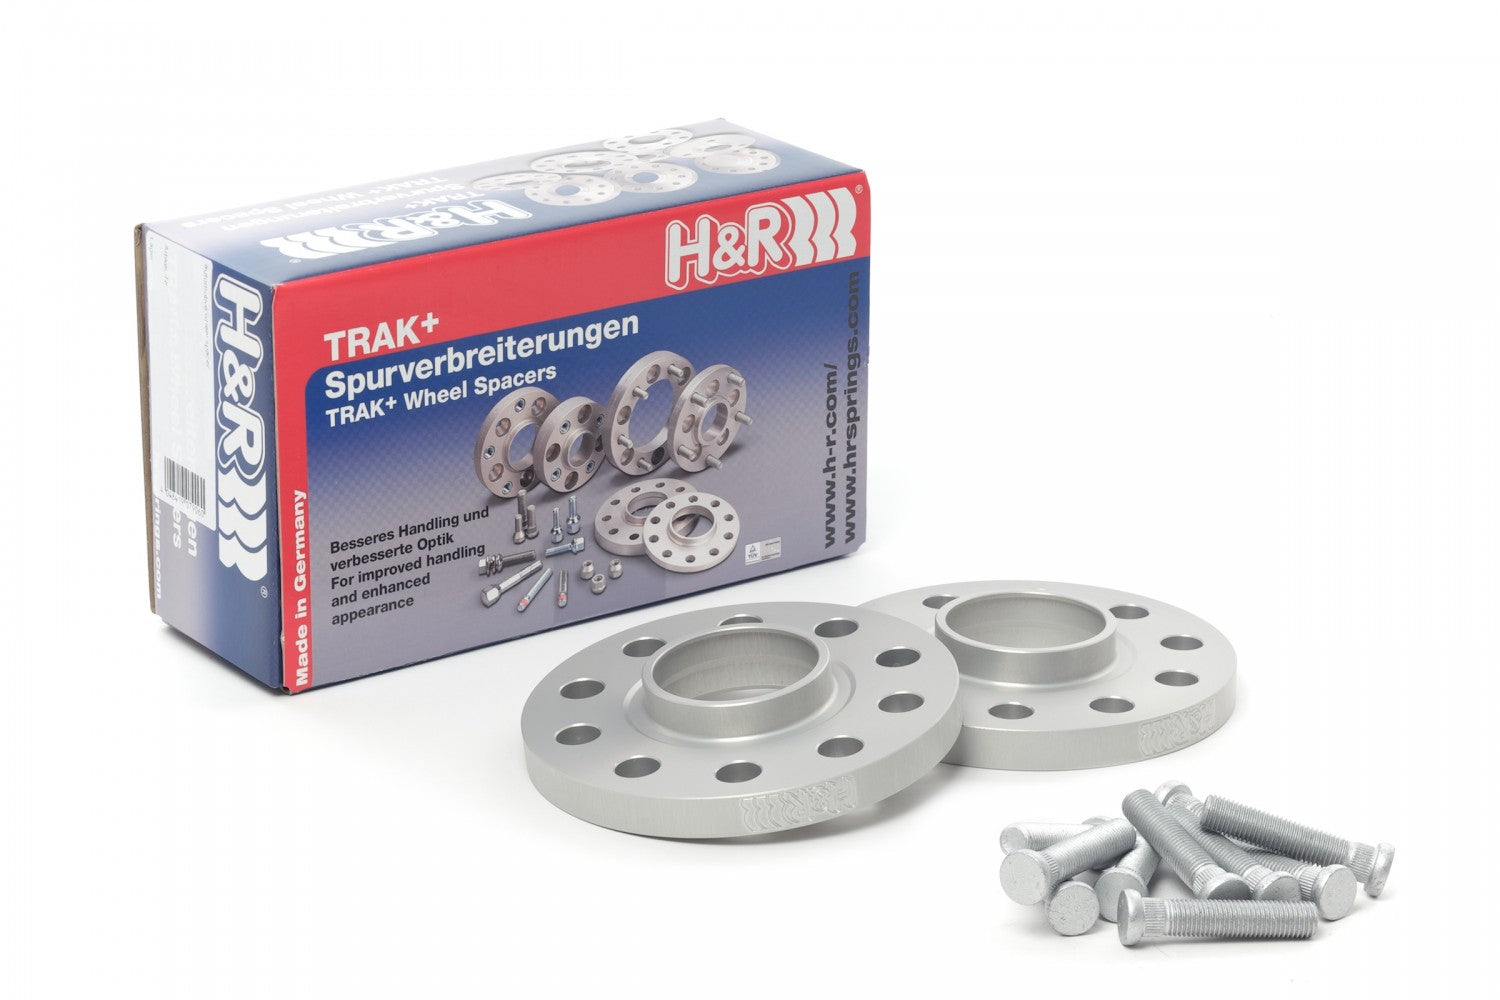 H&R TRAK+ Wheel Spacers - Pair - DRS Series - 15mm 5x114.3 / 64.1 / 12x1.5 - 3065640 - SILVER